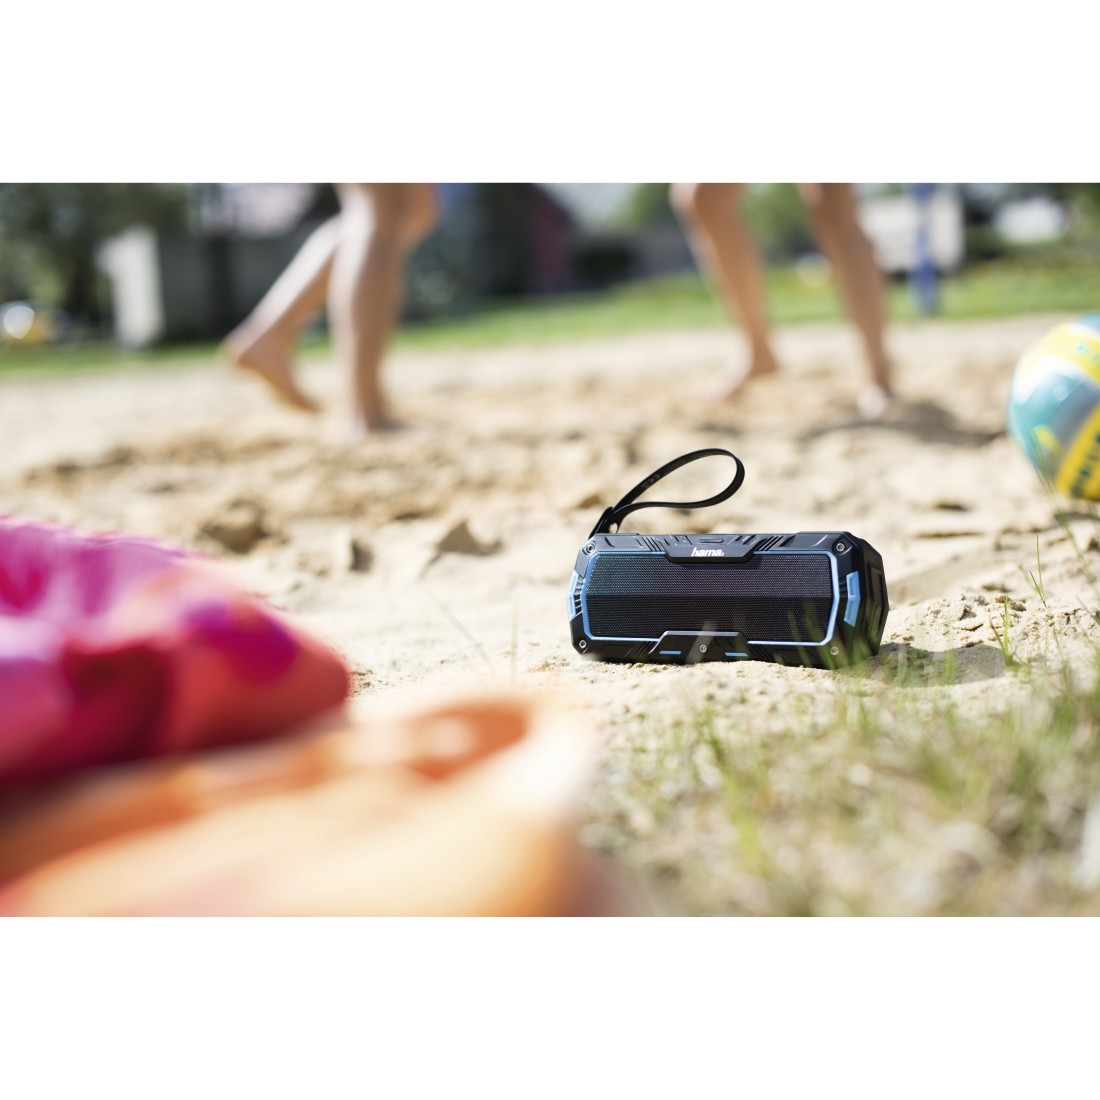 awx2 High-Res Appliance 2 - Hama, Rockman-L Mobile Bluetooth Speaker, black/blue